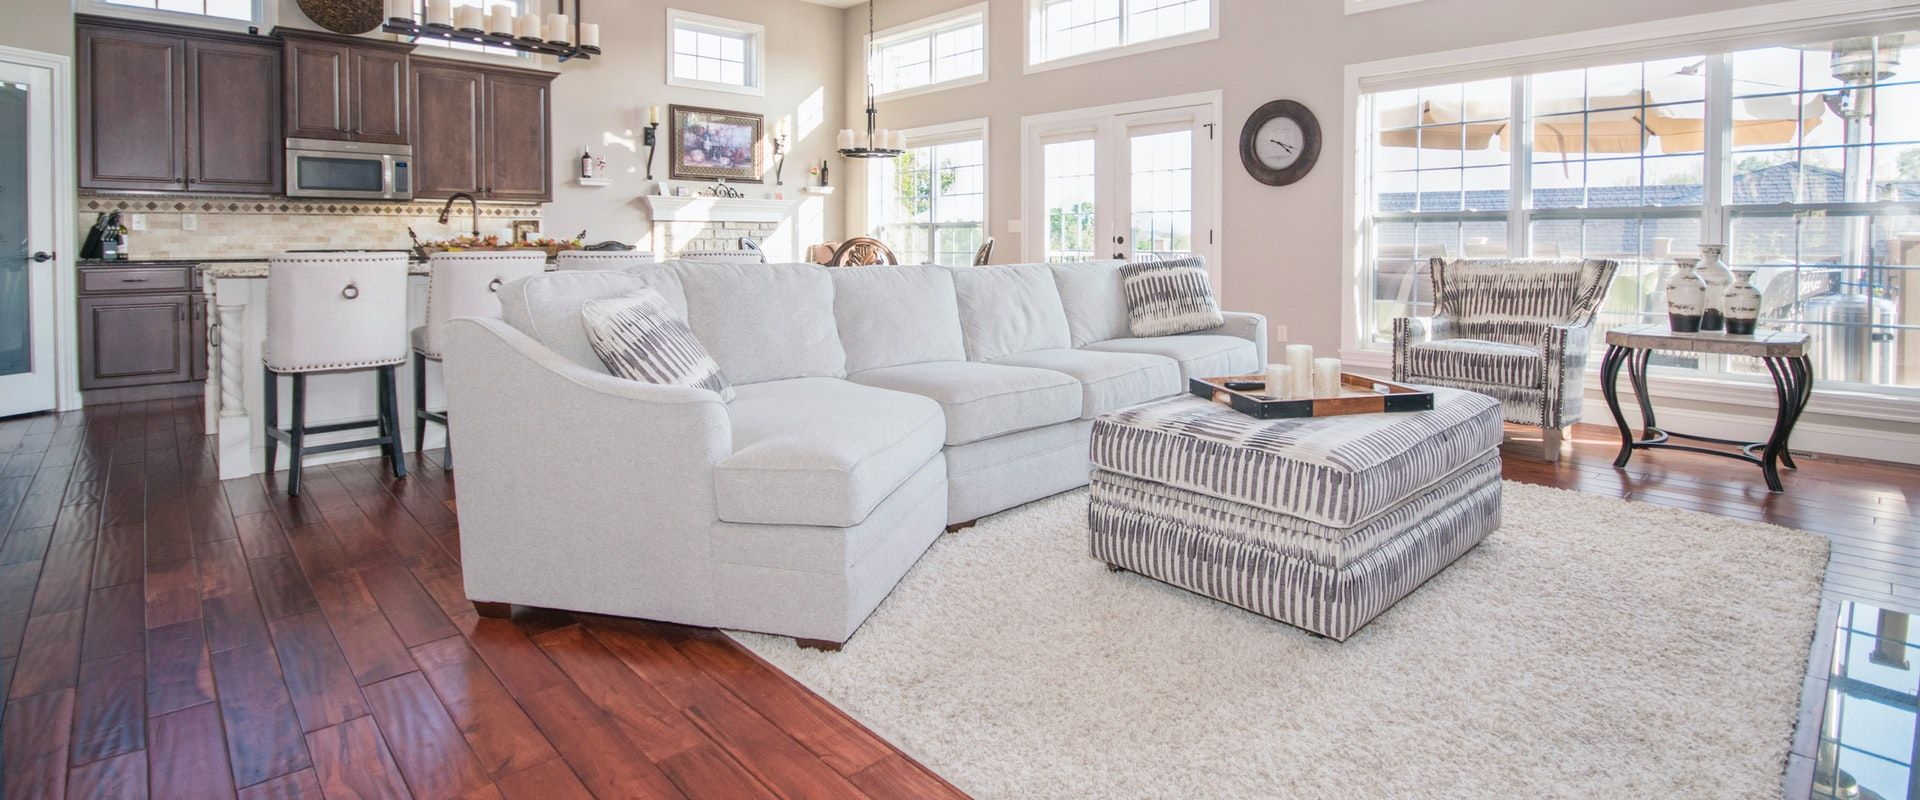 flooring options to increase home value